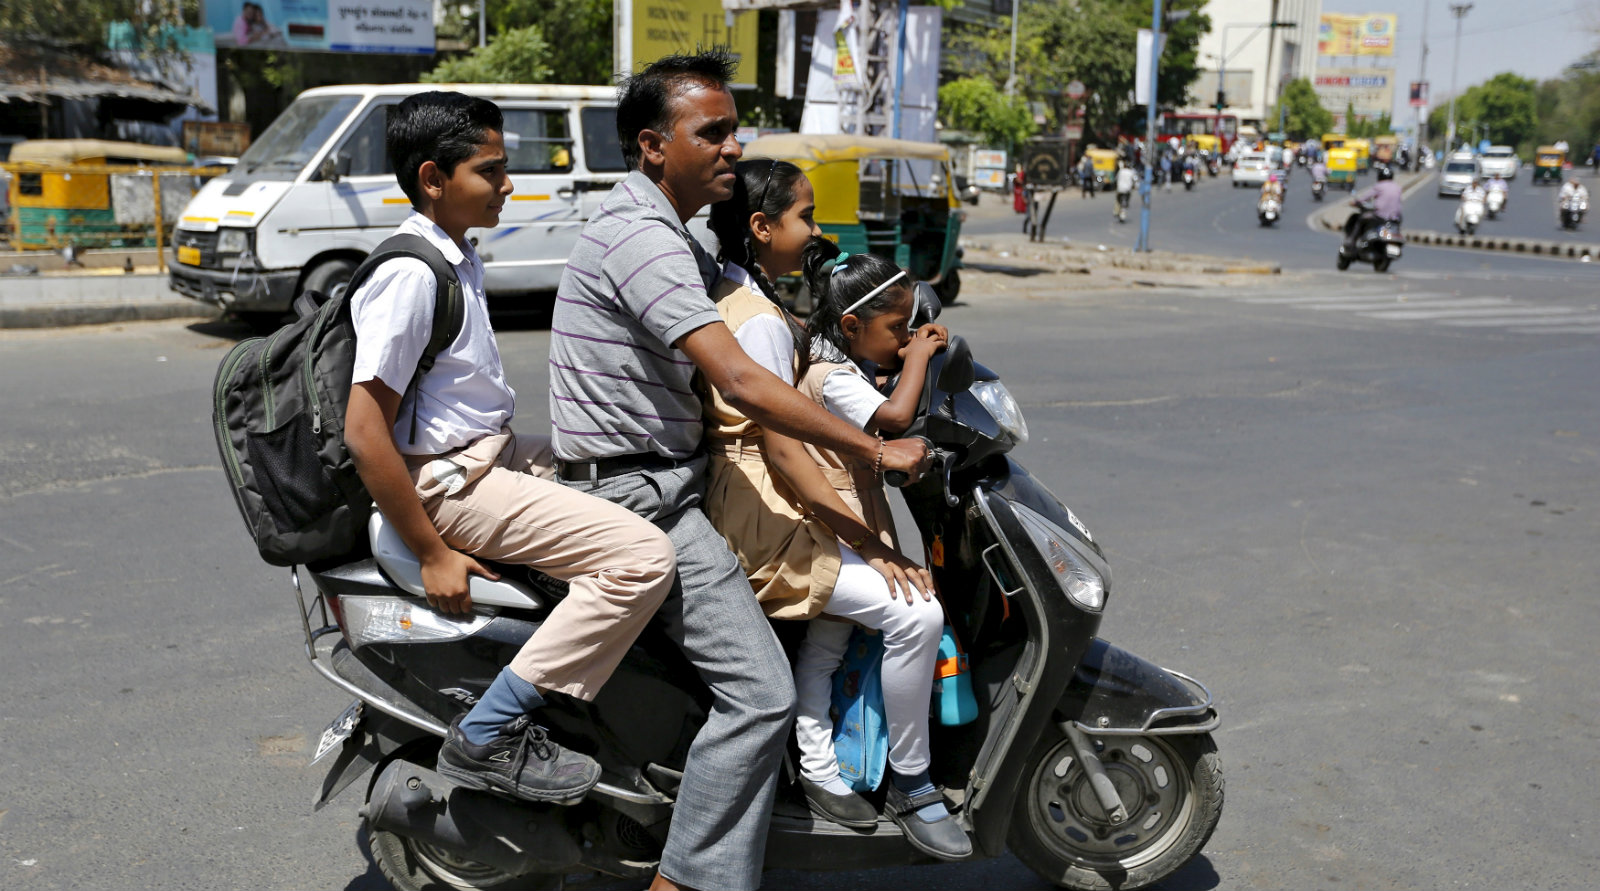 A man rides a scooter and ferries students to their school in Ahmedabad, India, March 22, 2016.